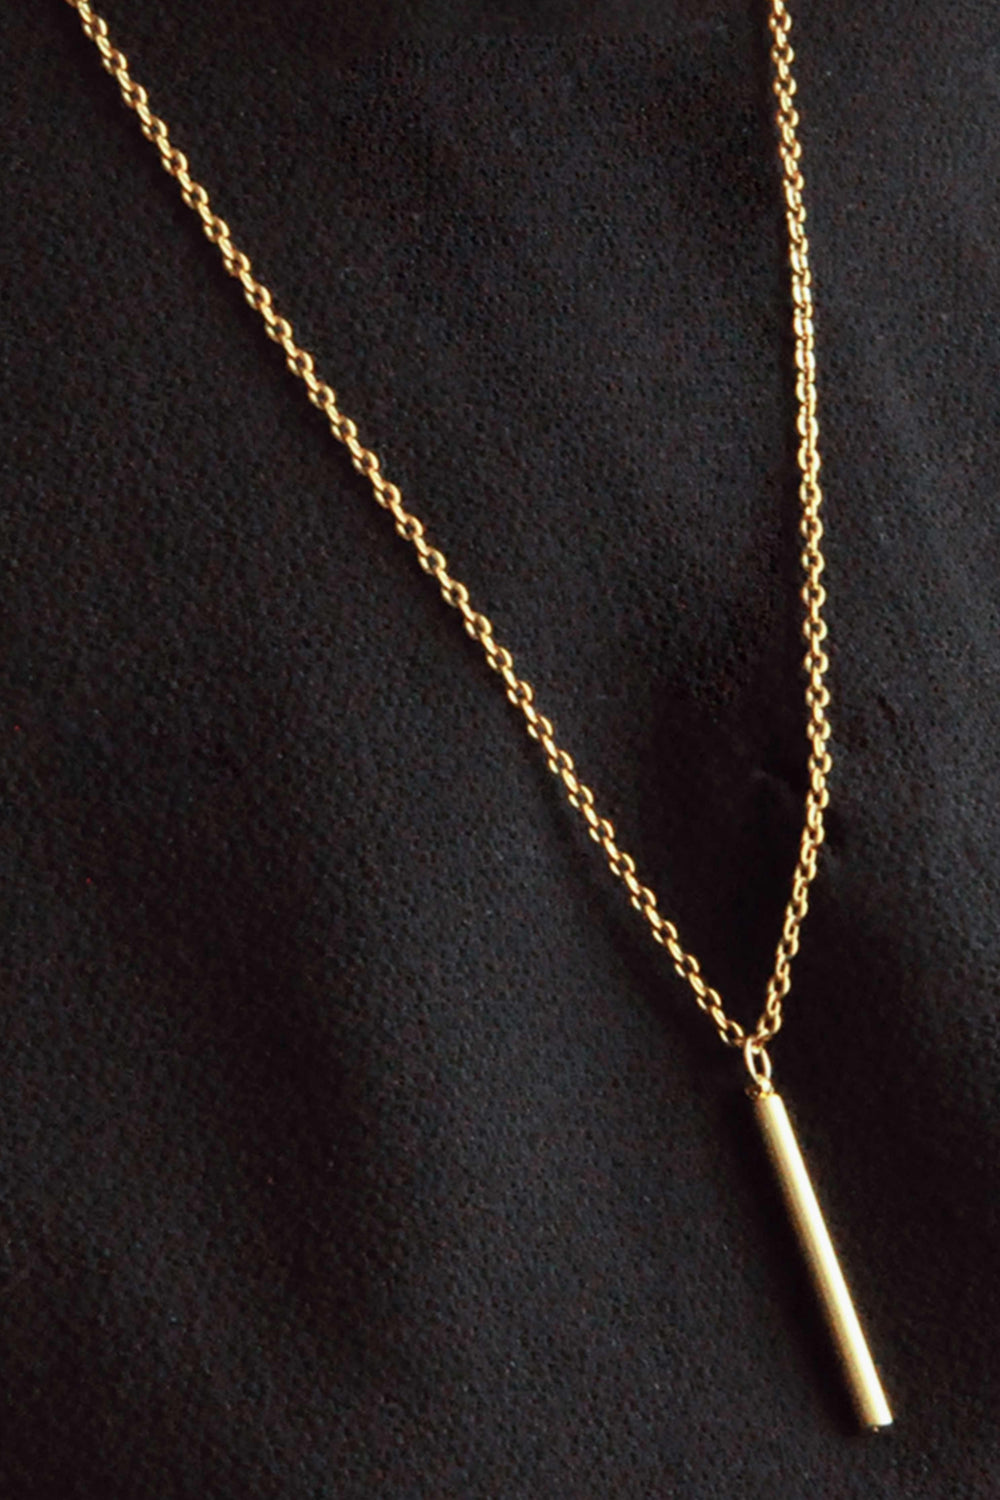 MARRAKECH NECKLACE IN GOLD | Women's Online Shopping | CHICLEFRIQUE